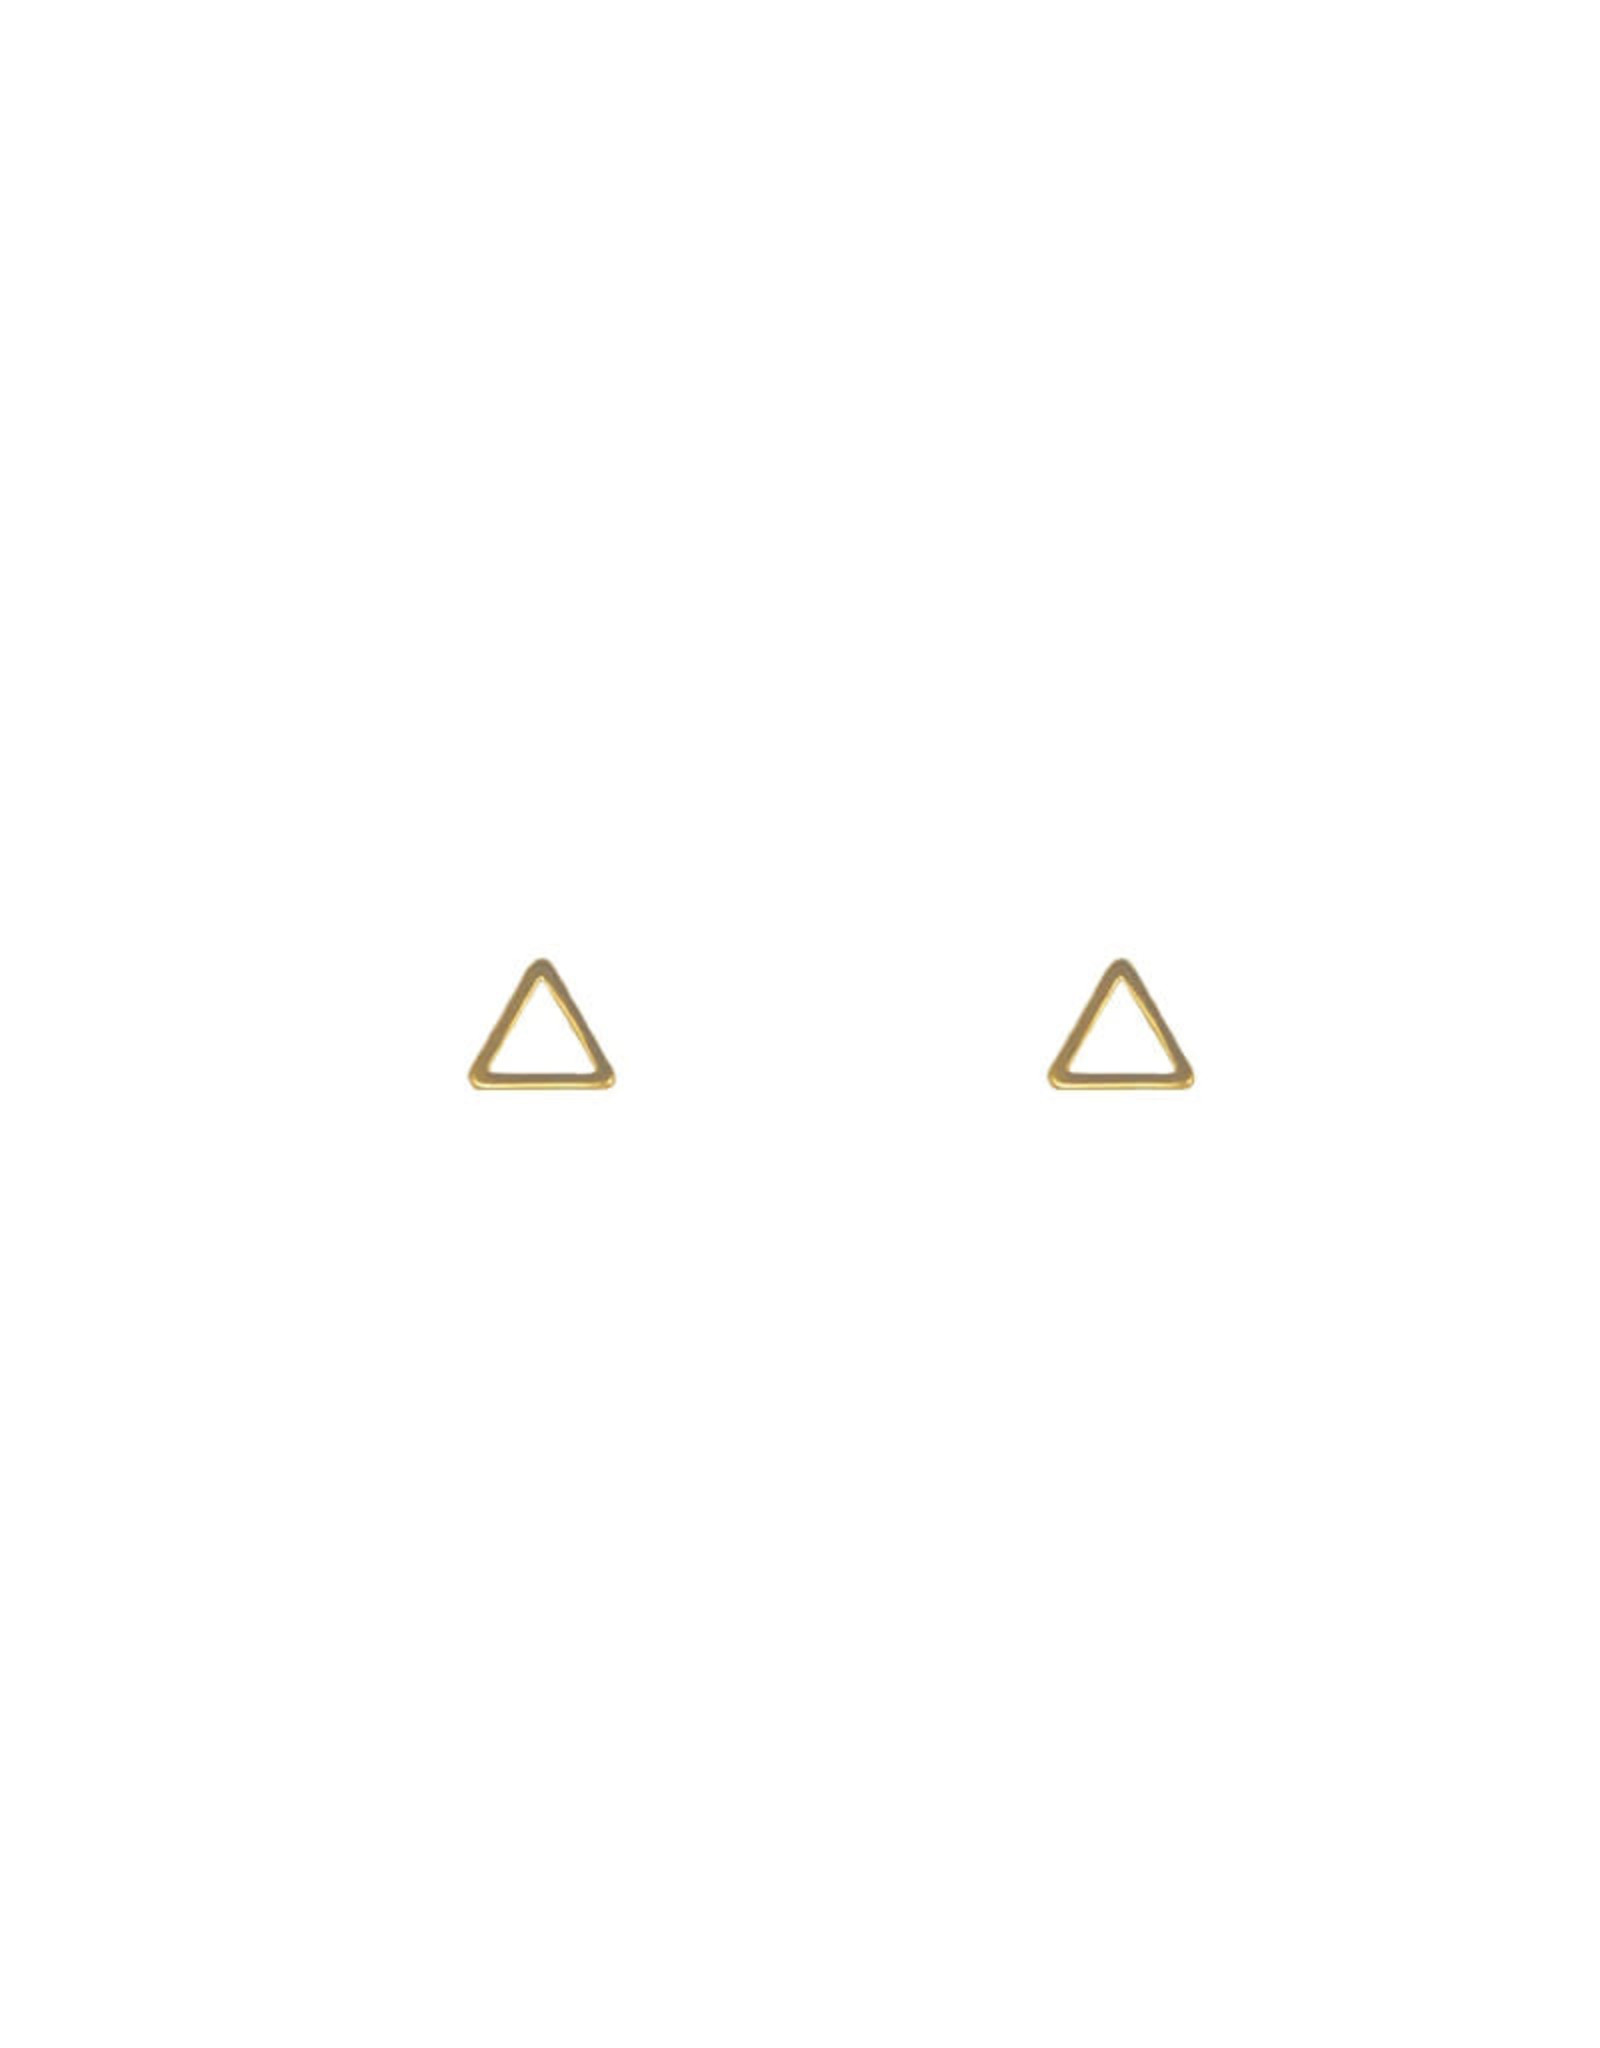 Lost & Faune Boucles d'oreilles tiges Triangles Lost & Faune PE21 Or